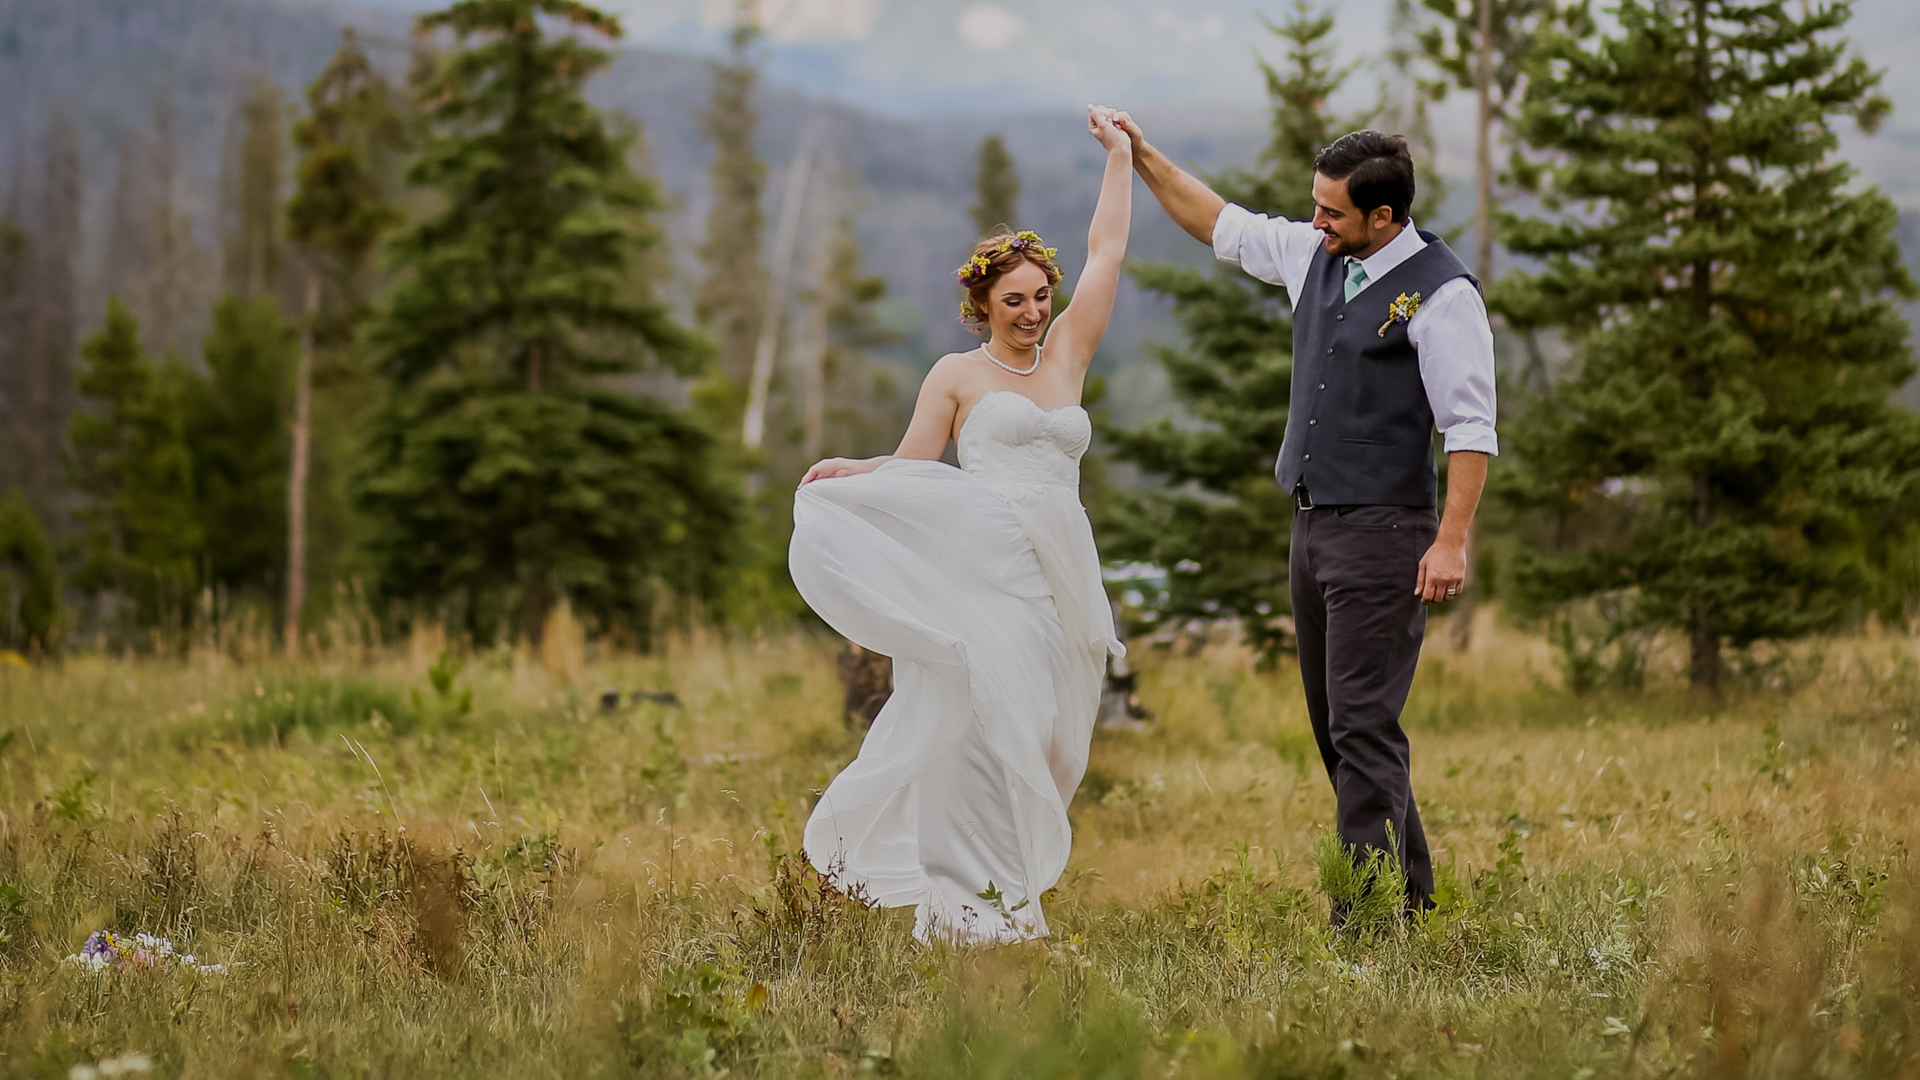 Check portfolios, pricing and availability for wedding photographers in Denver